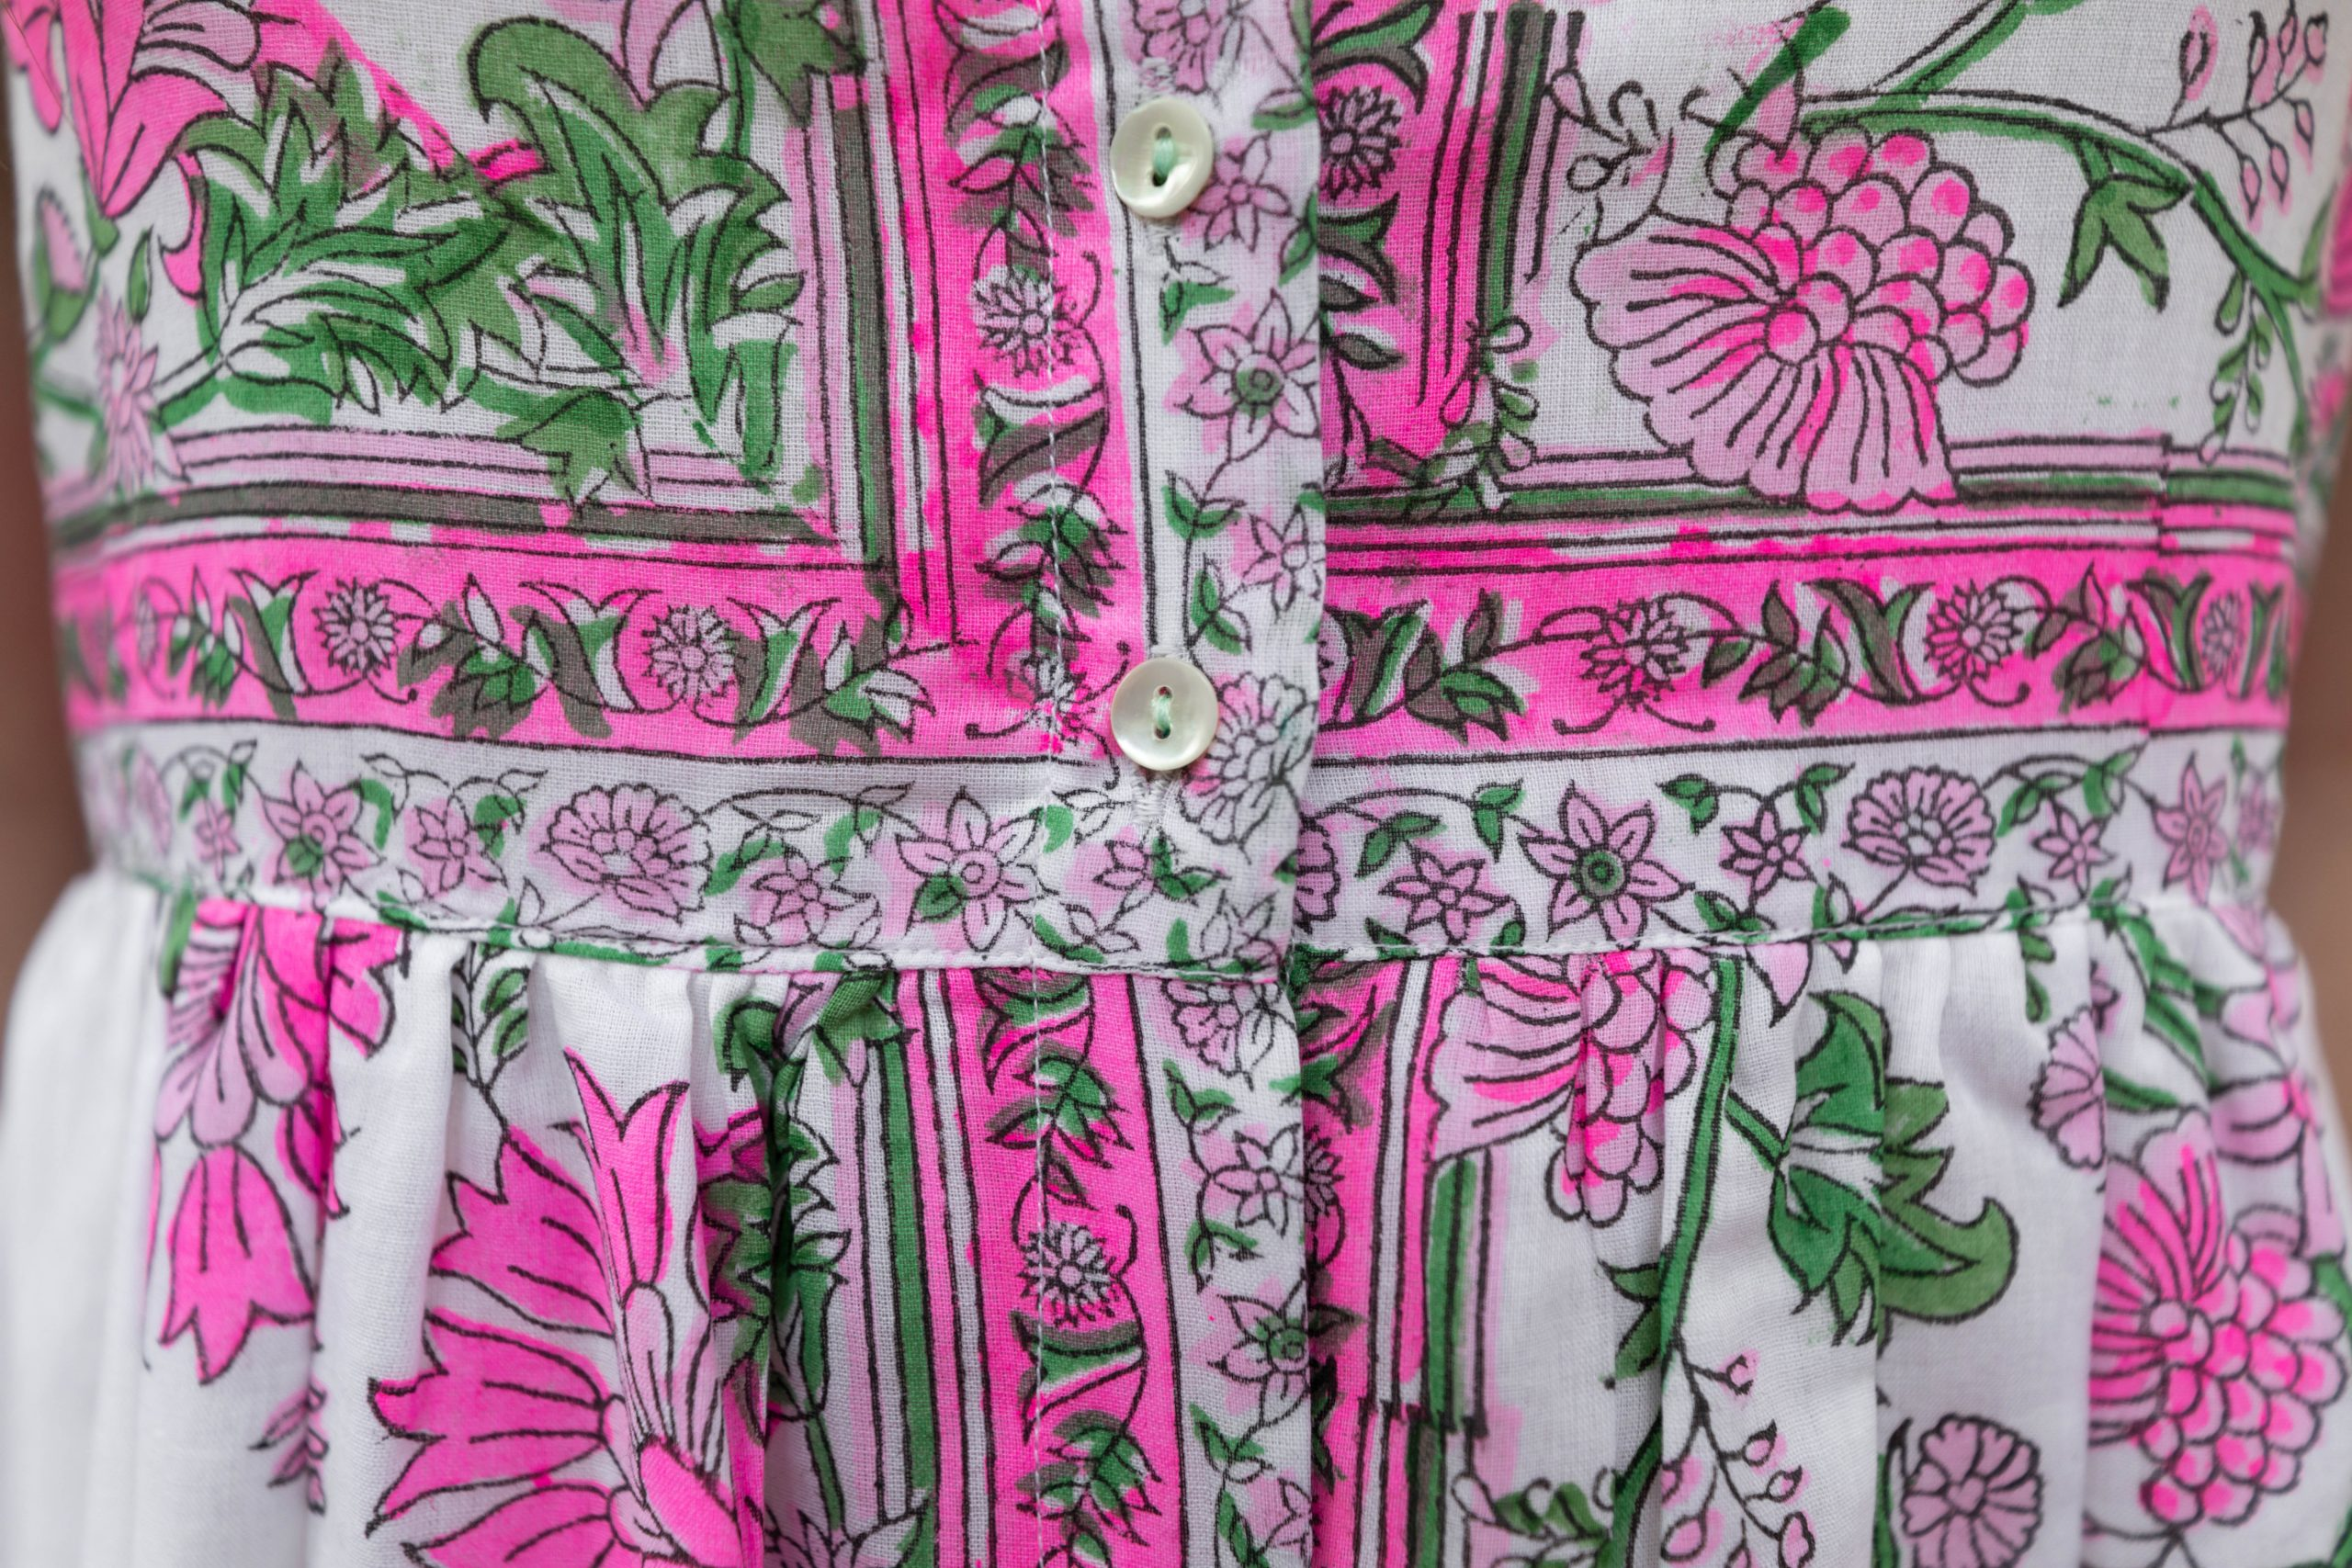 Juliet Dunn Cotton Tie-Shoulder Block Printed Button Up Summer Dress Pink and Green Floral Styled by Annie Fairfax